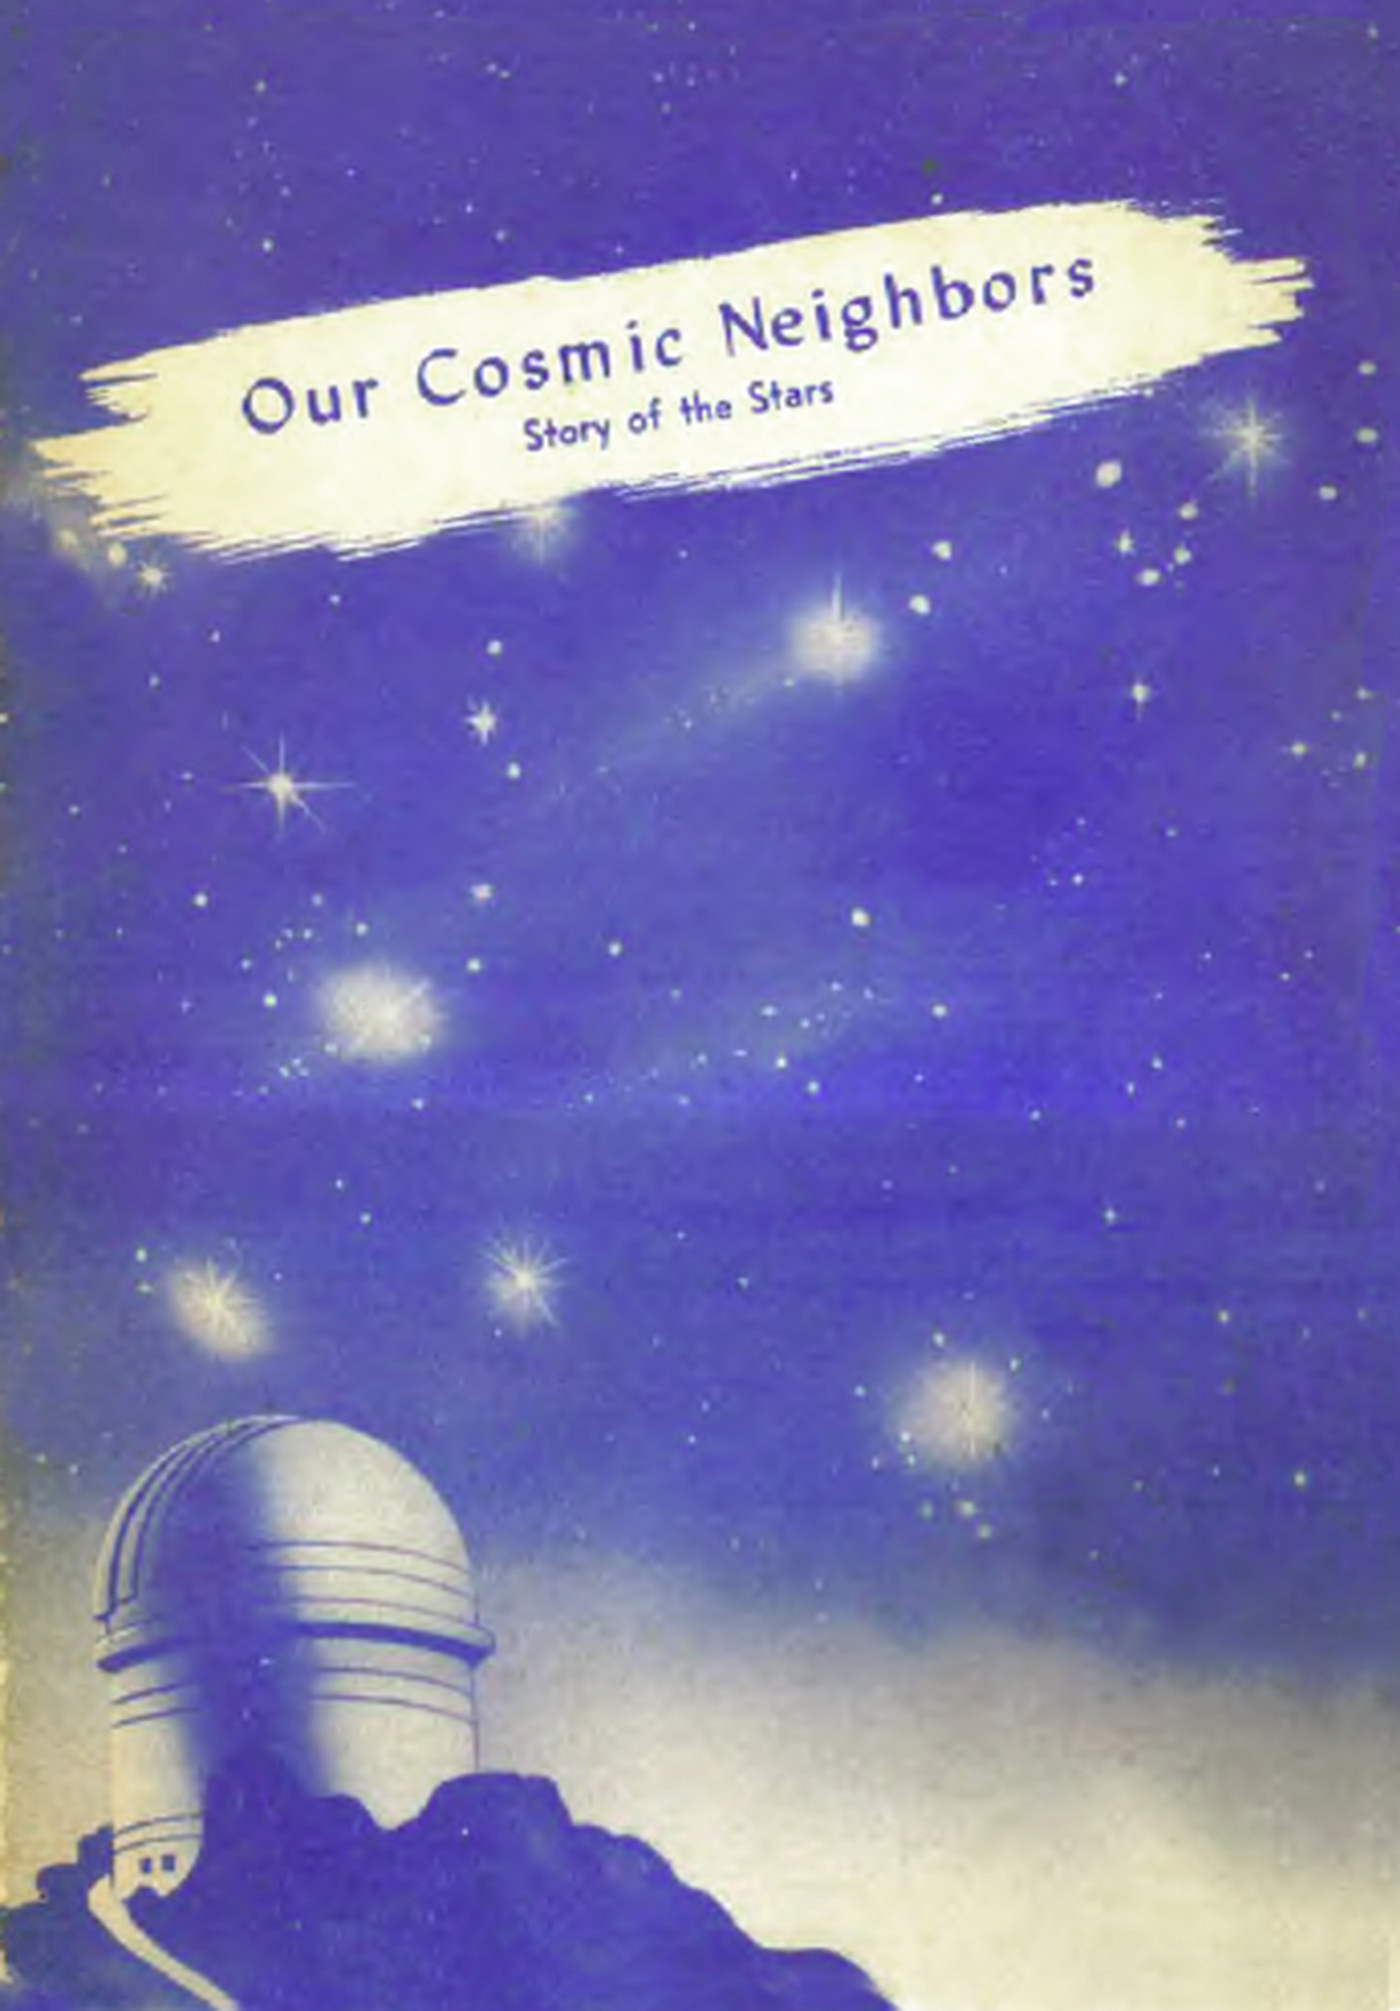 Our Cosmic Neighbors: Story of the Stars